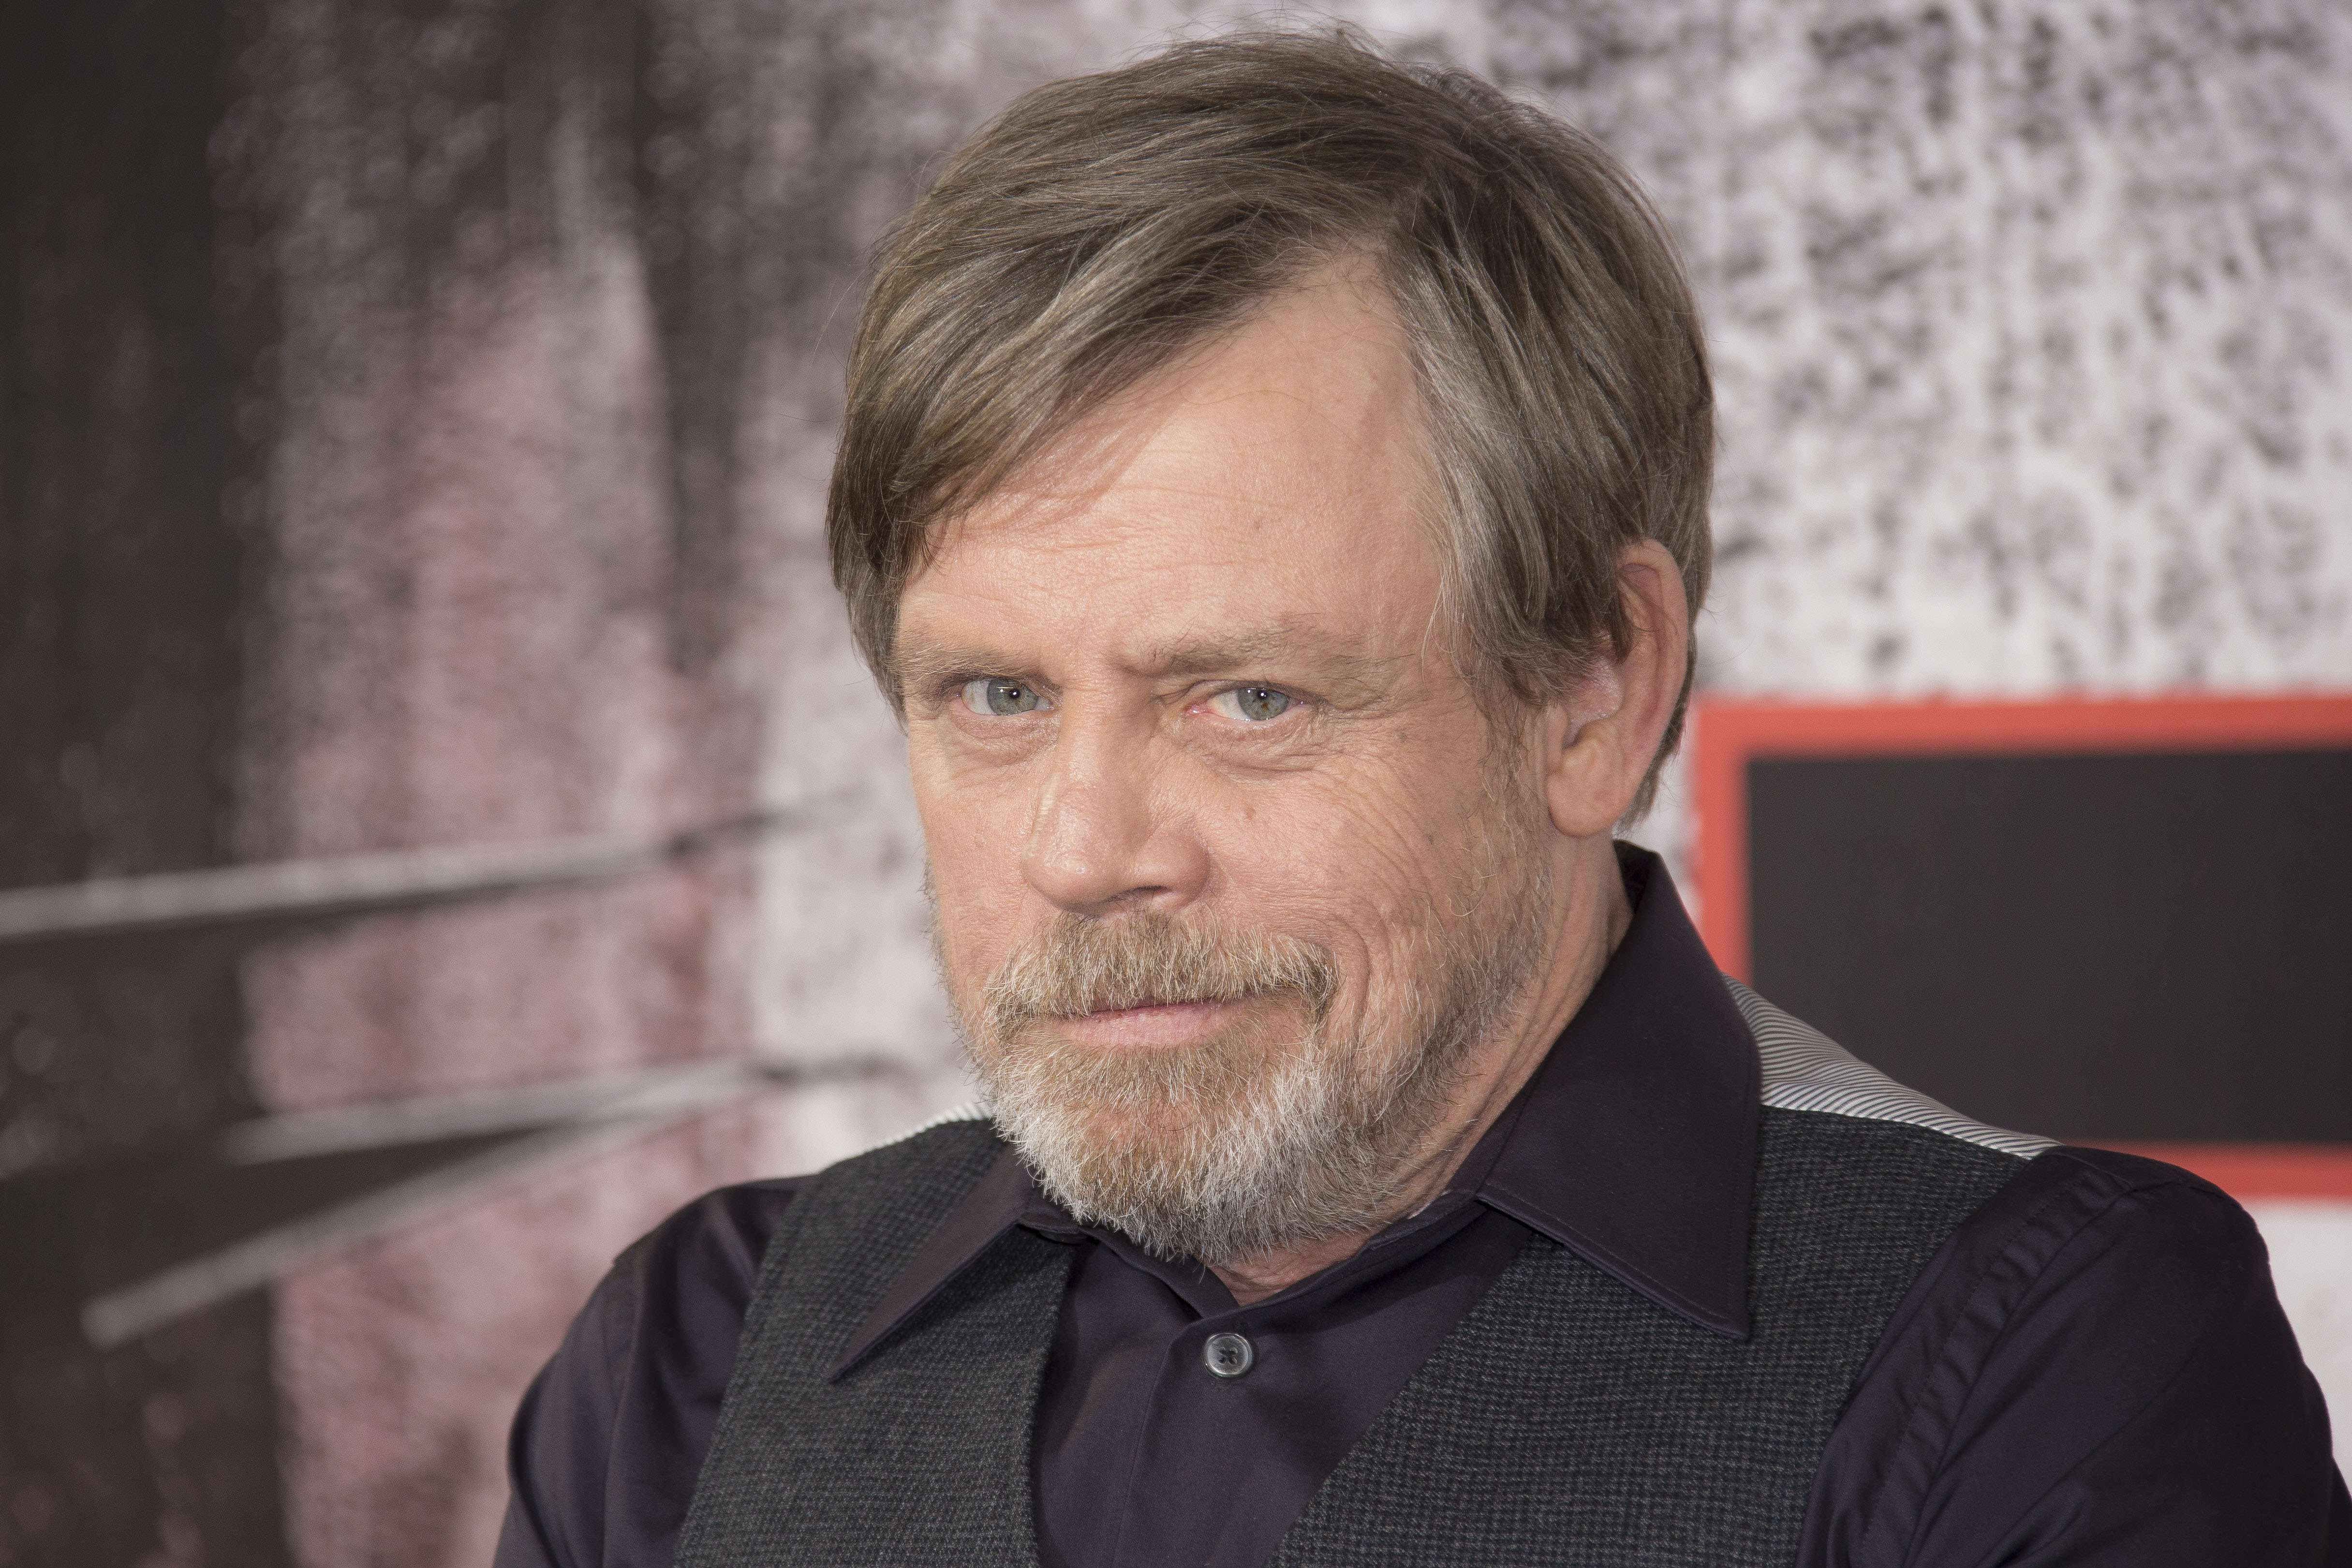 Mark Hamill Destroys Ted Cruz on Twitter: 'Maybe You're Distracted From Watching Porn At the Office Again'